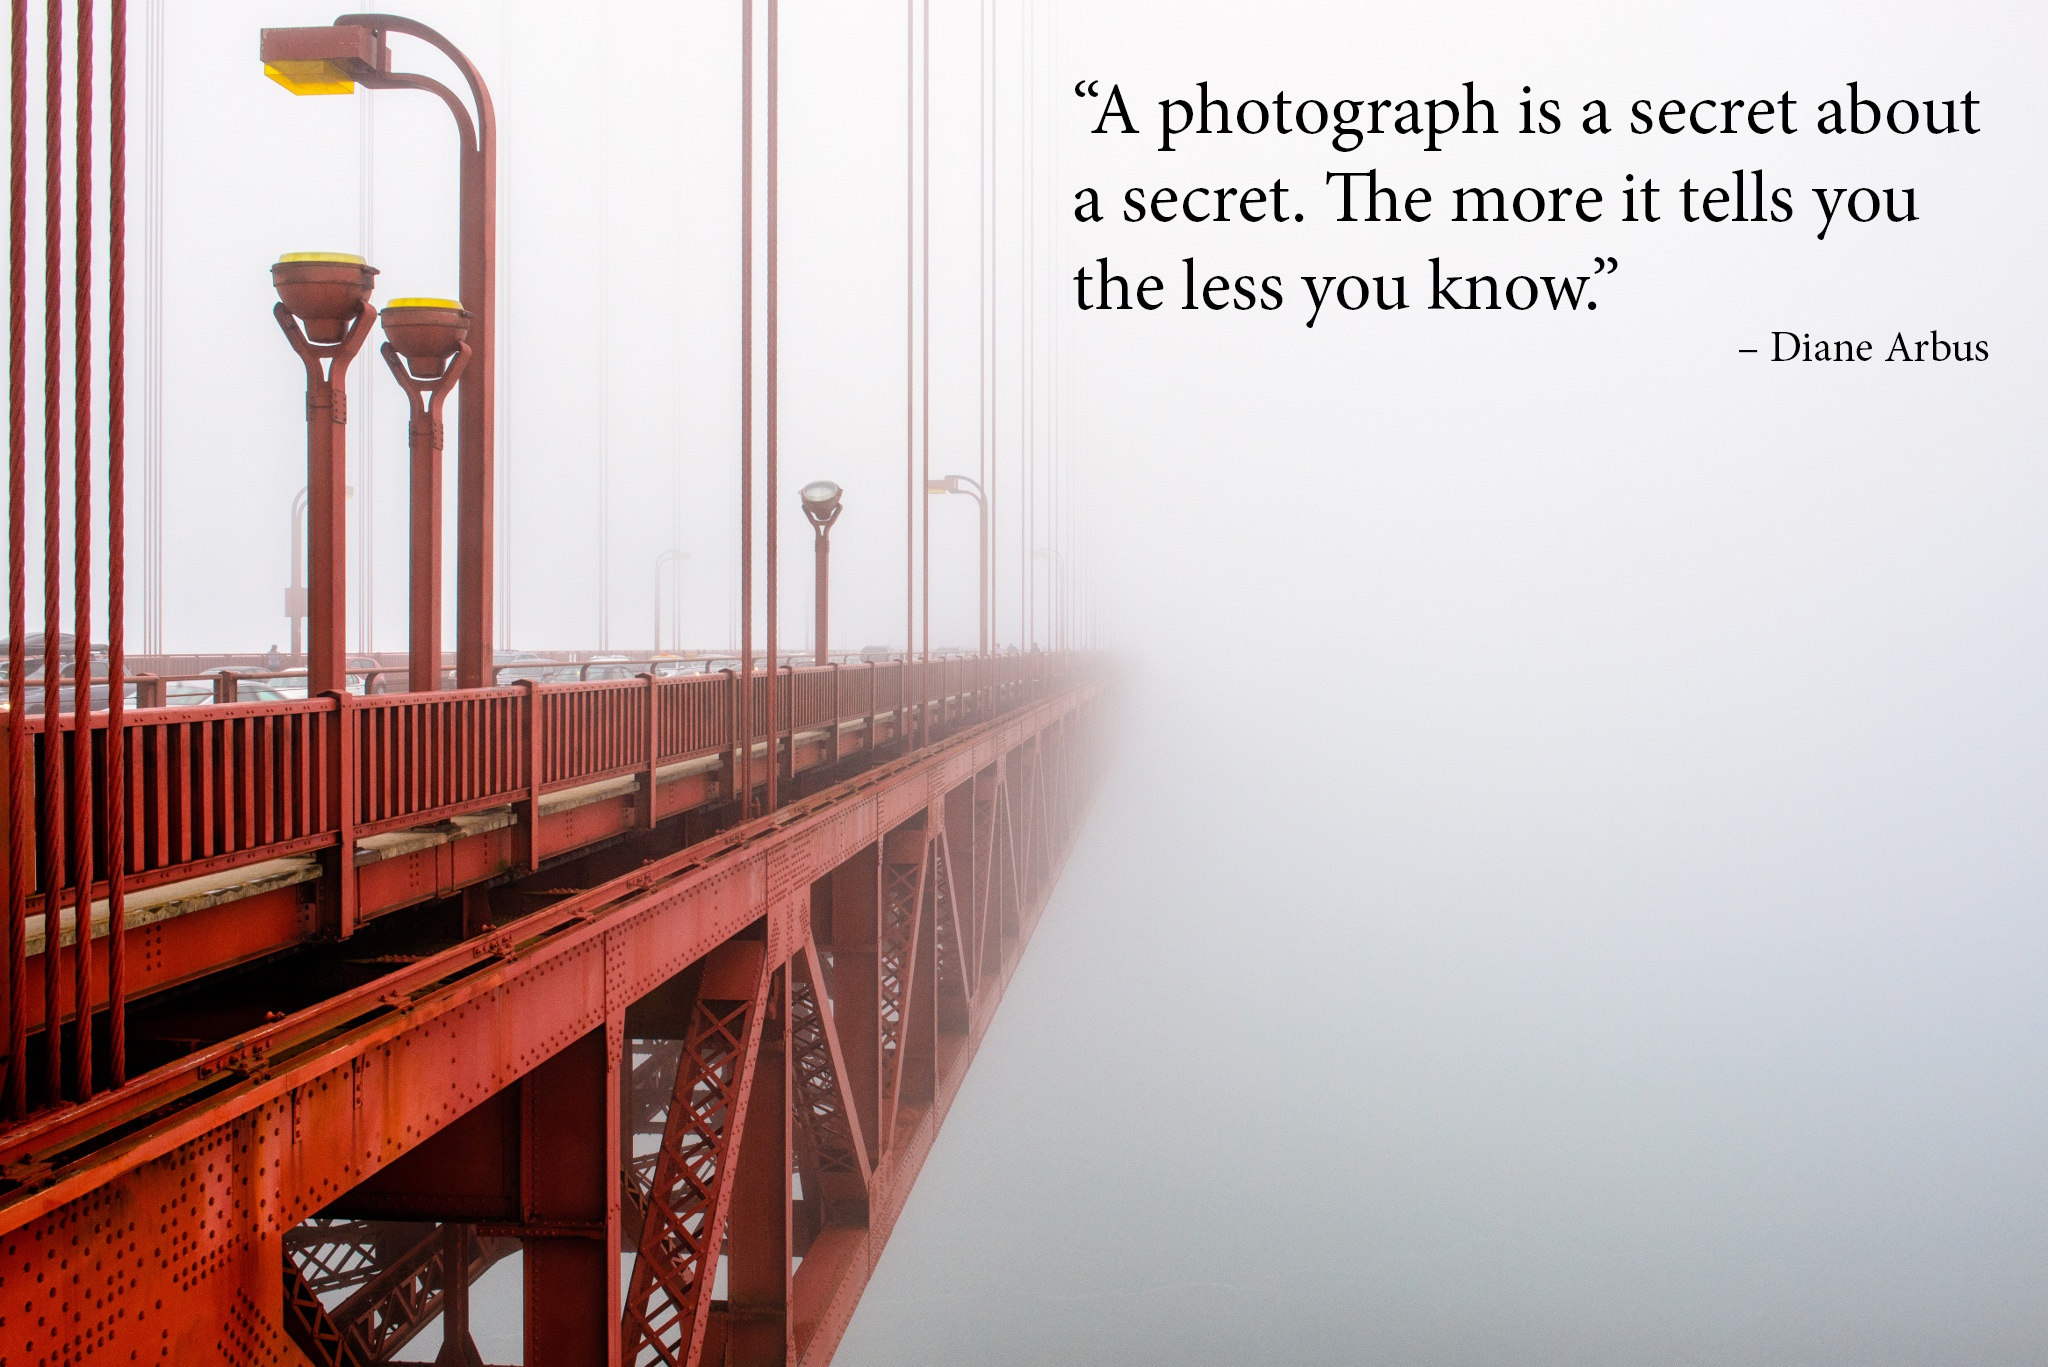 photography quotes - The fog and the bridge